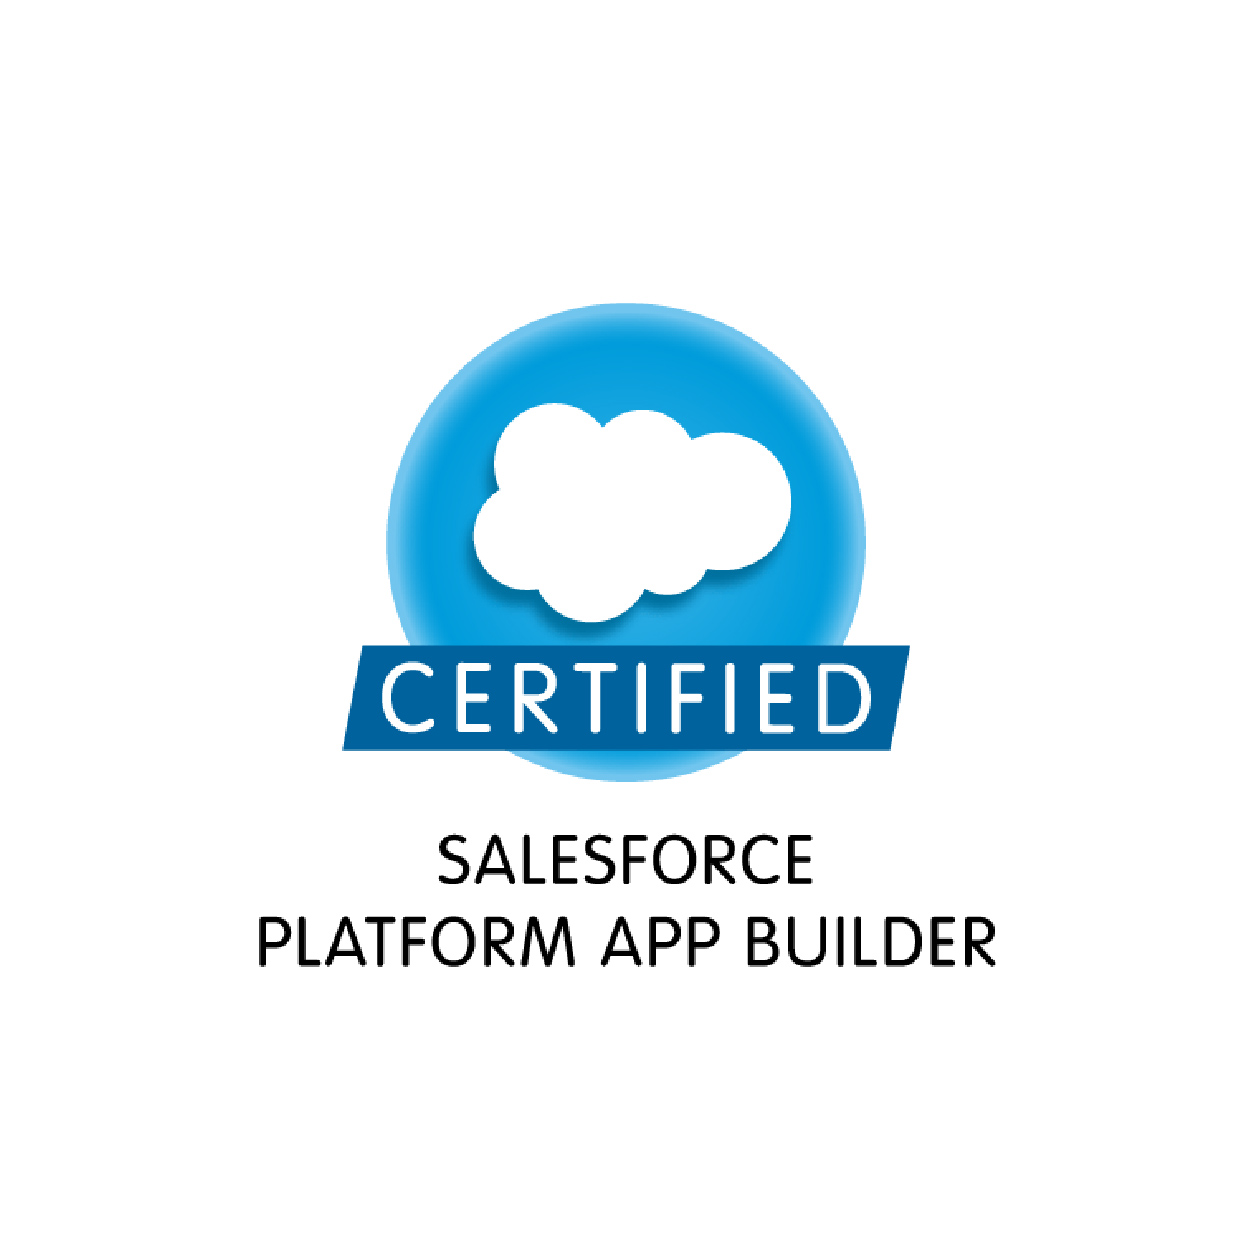 salesforce_certified-05.jpg